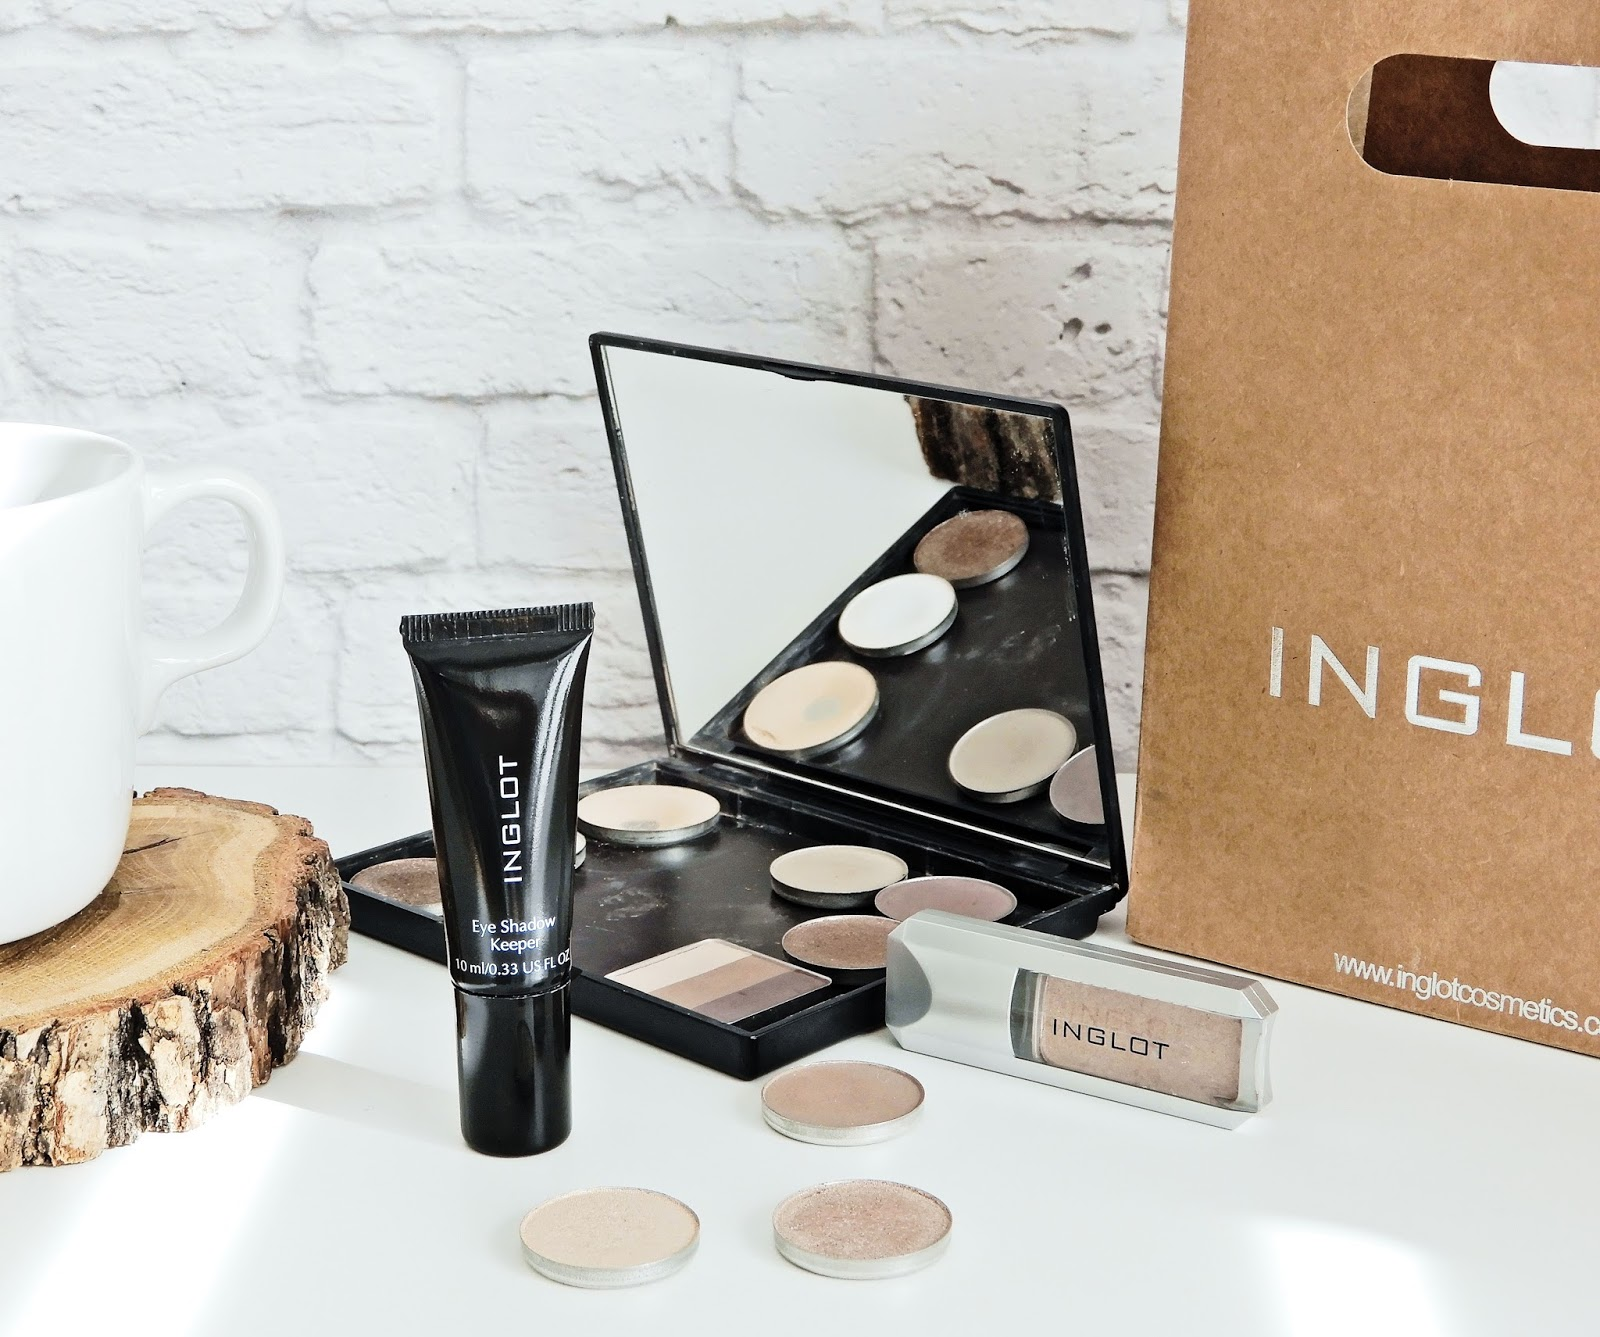 INGLOT Eye Shadow Keeper, baza po cienie Inglot, Inglot,